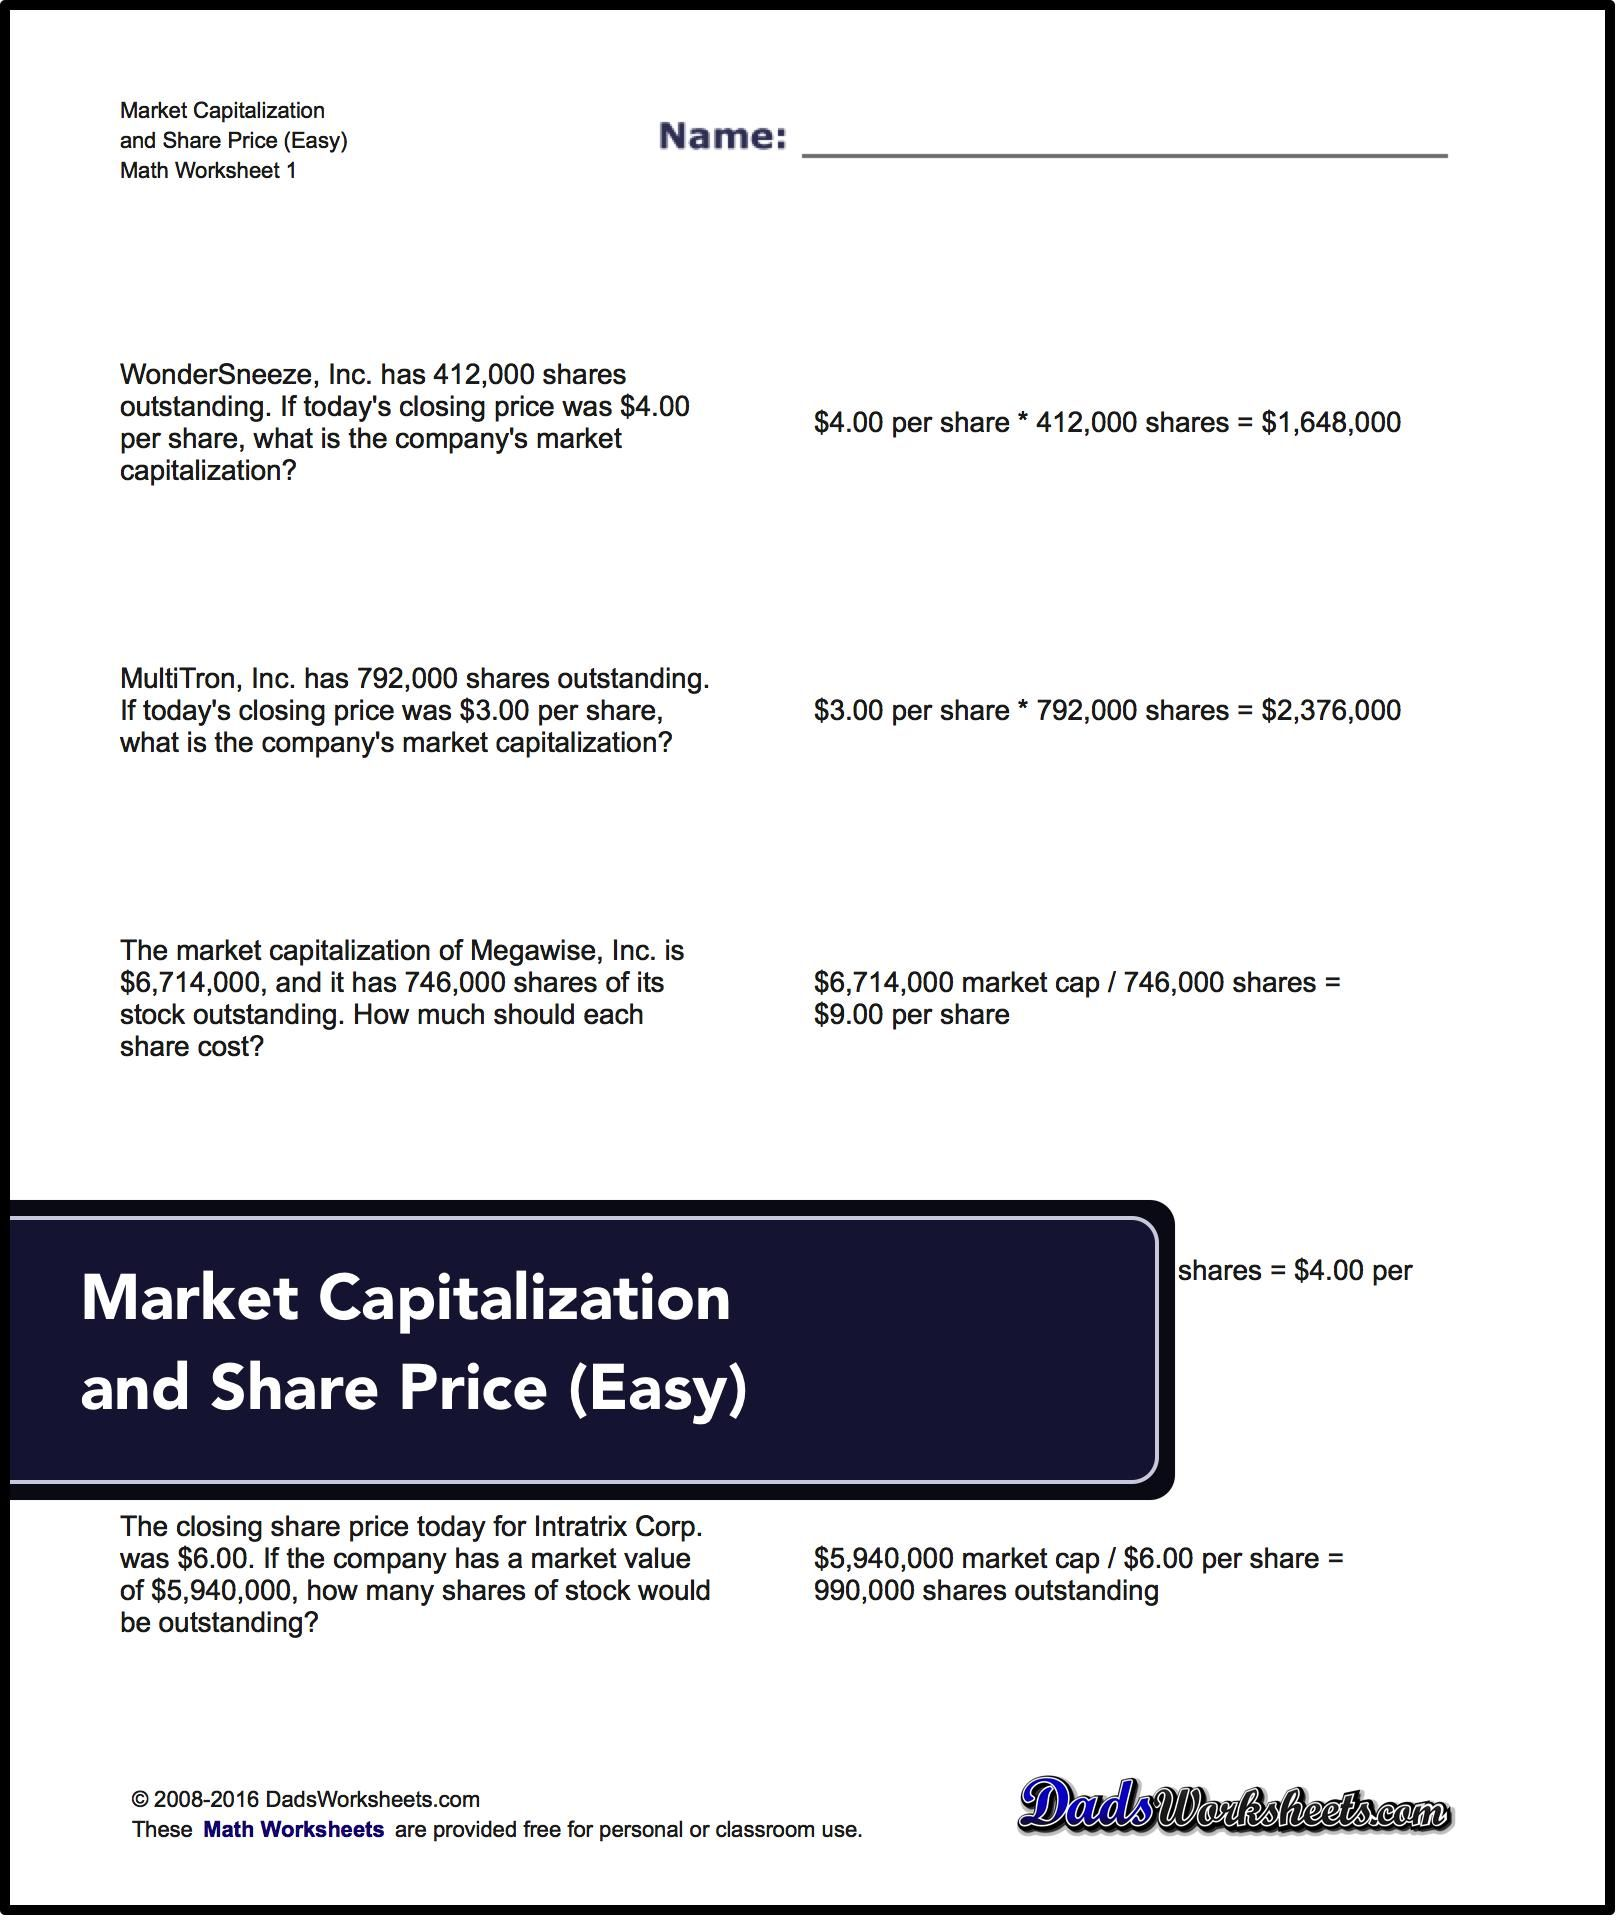 Problems To Calculate Market Capitalization Share Price